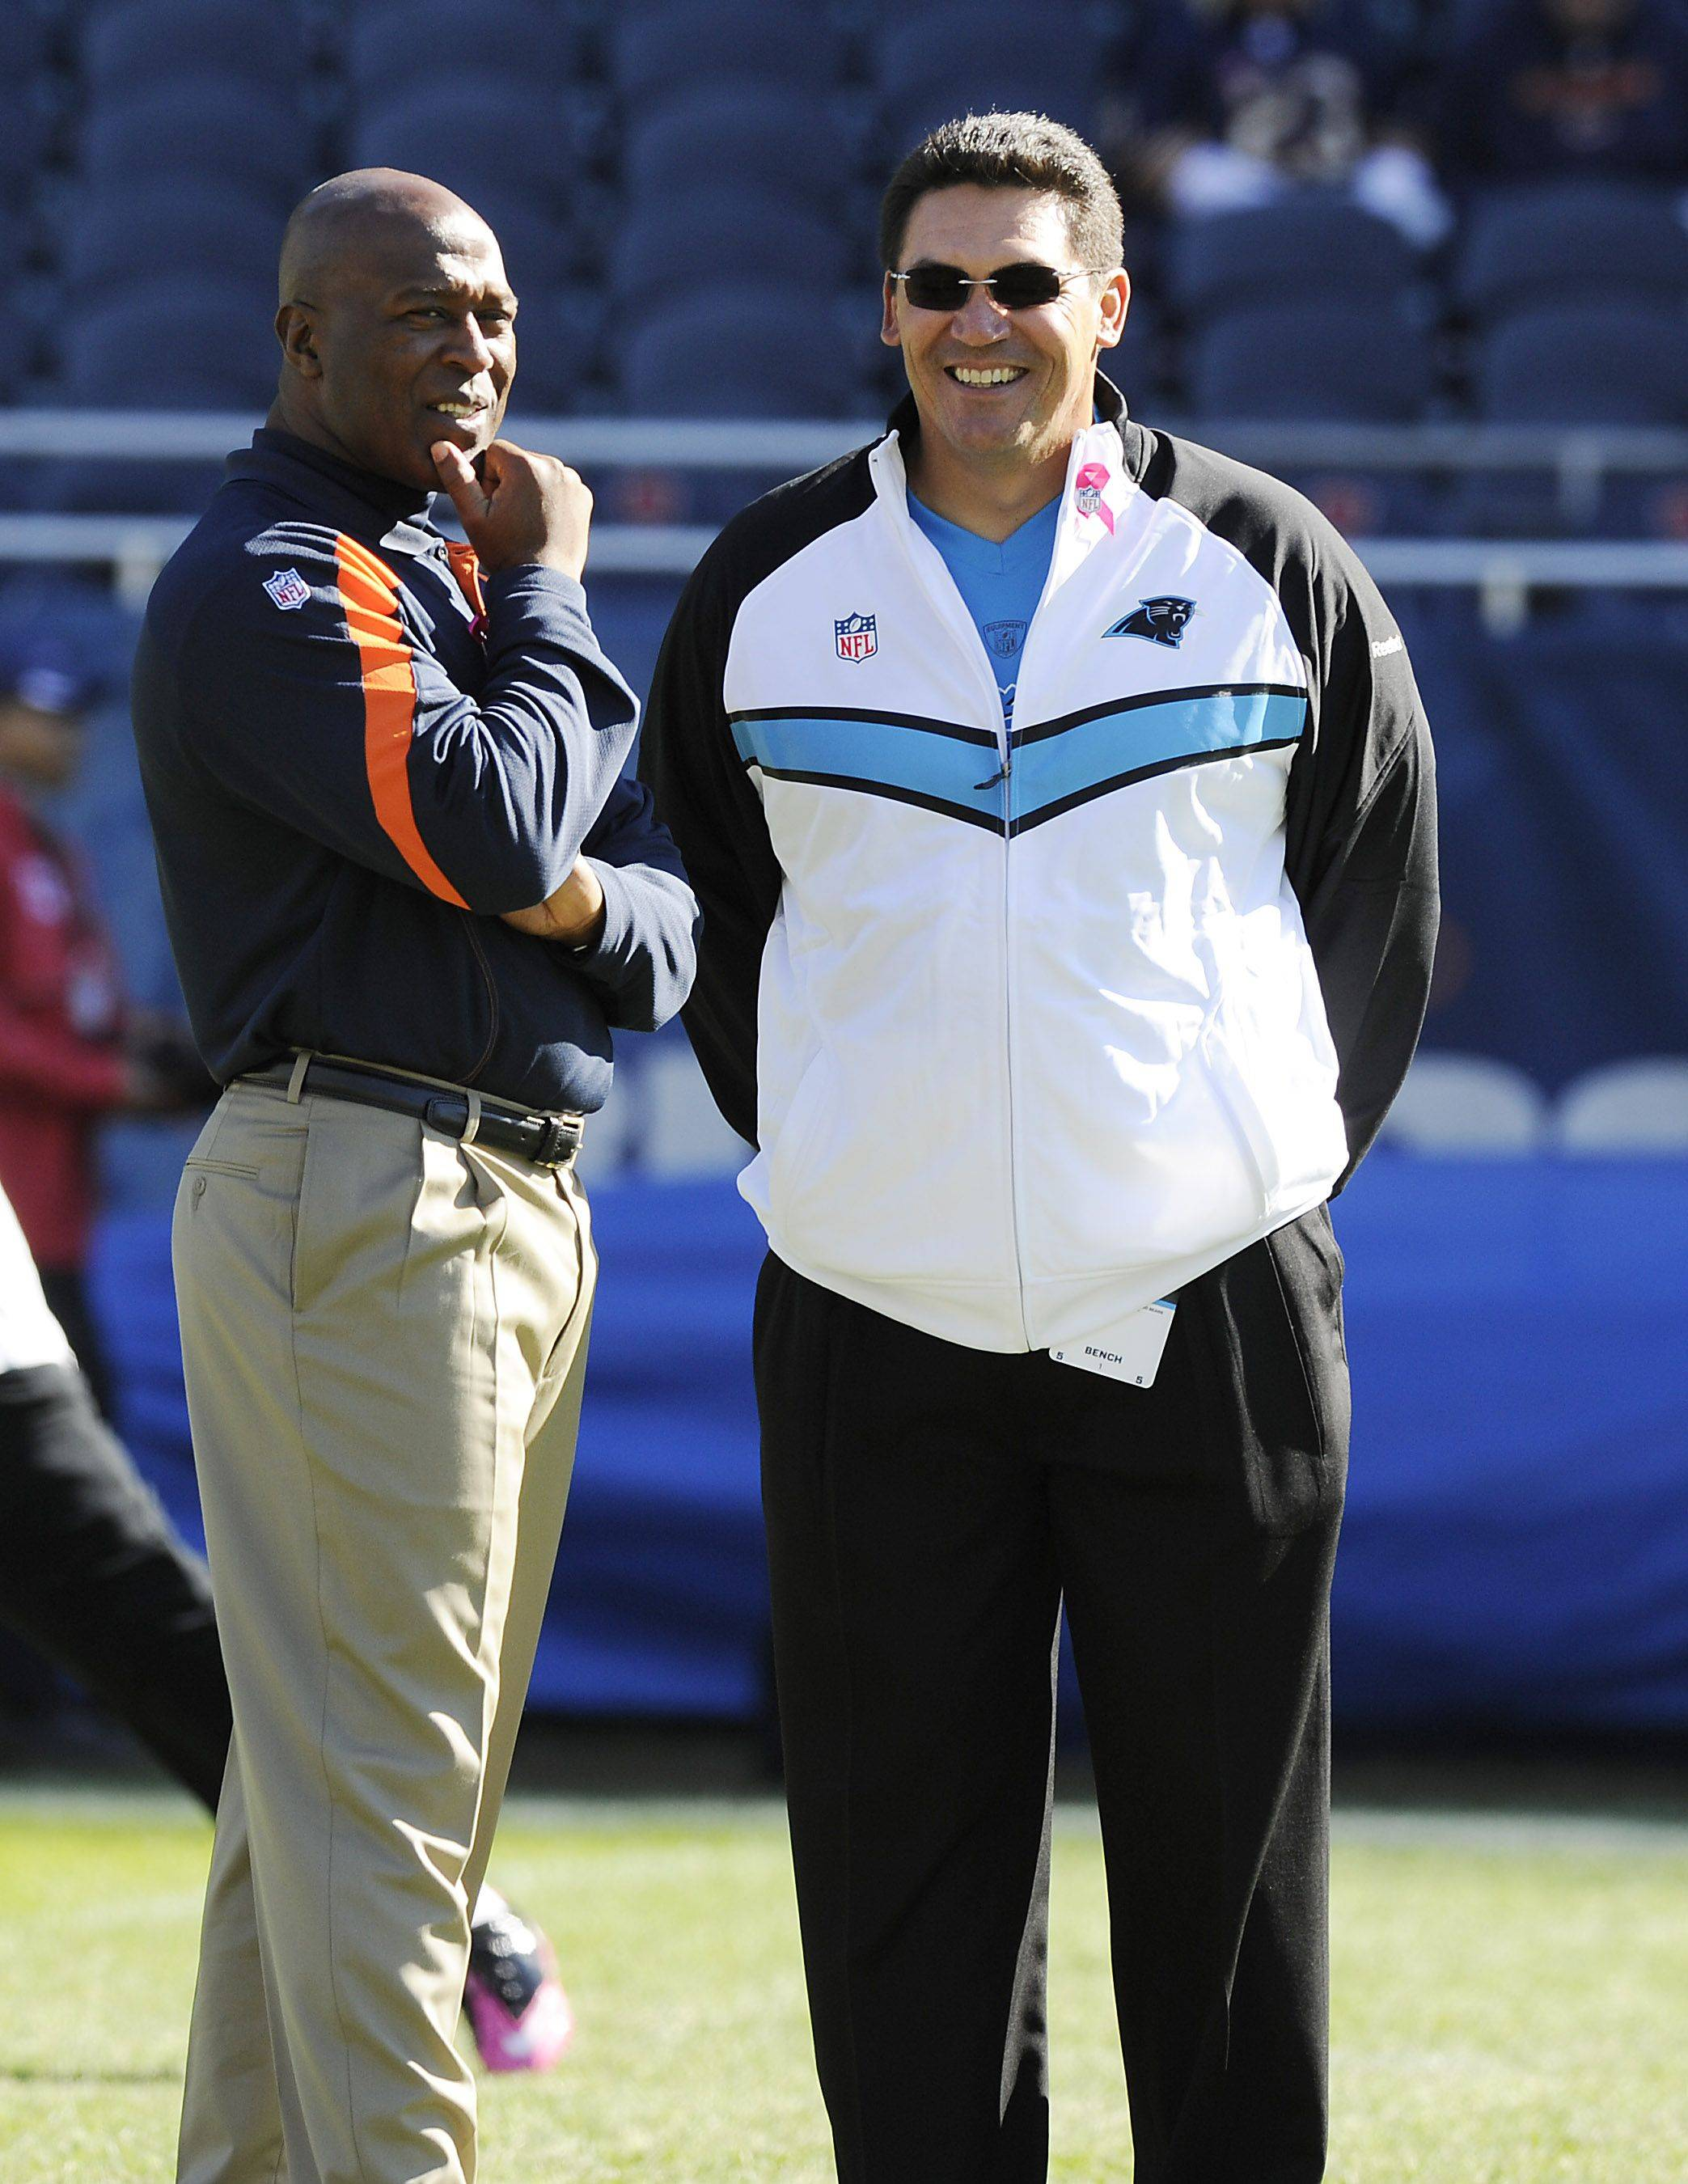 Chicago Bears coach Lovie Smith greets Panthers head coach Ron Rivera before the game as they get ready to play at Soldier Field in Chicago.